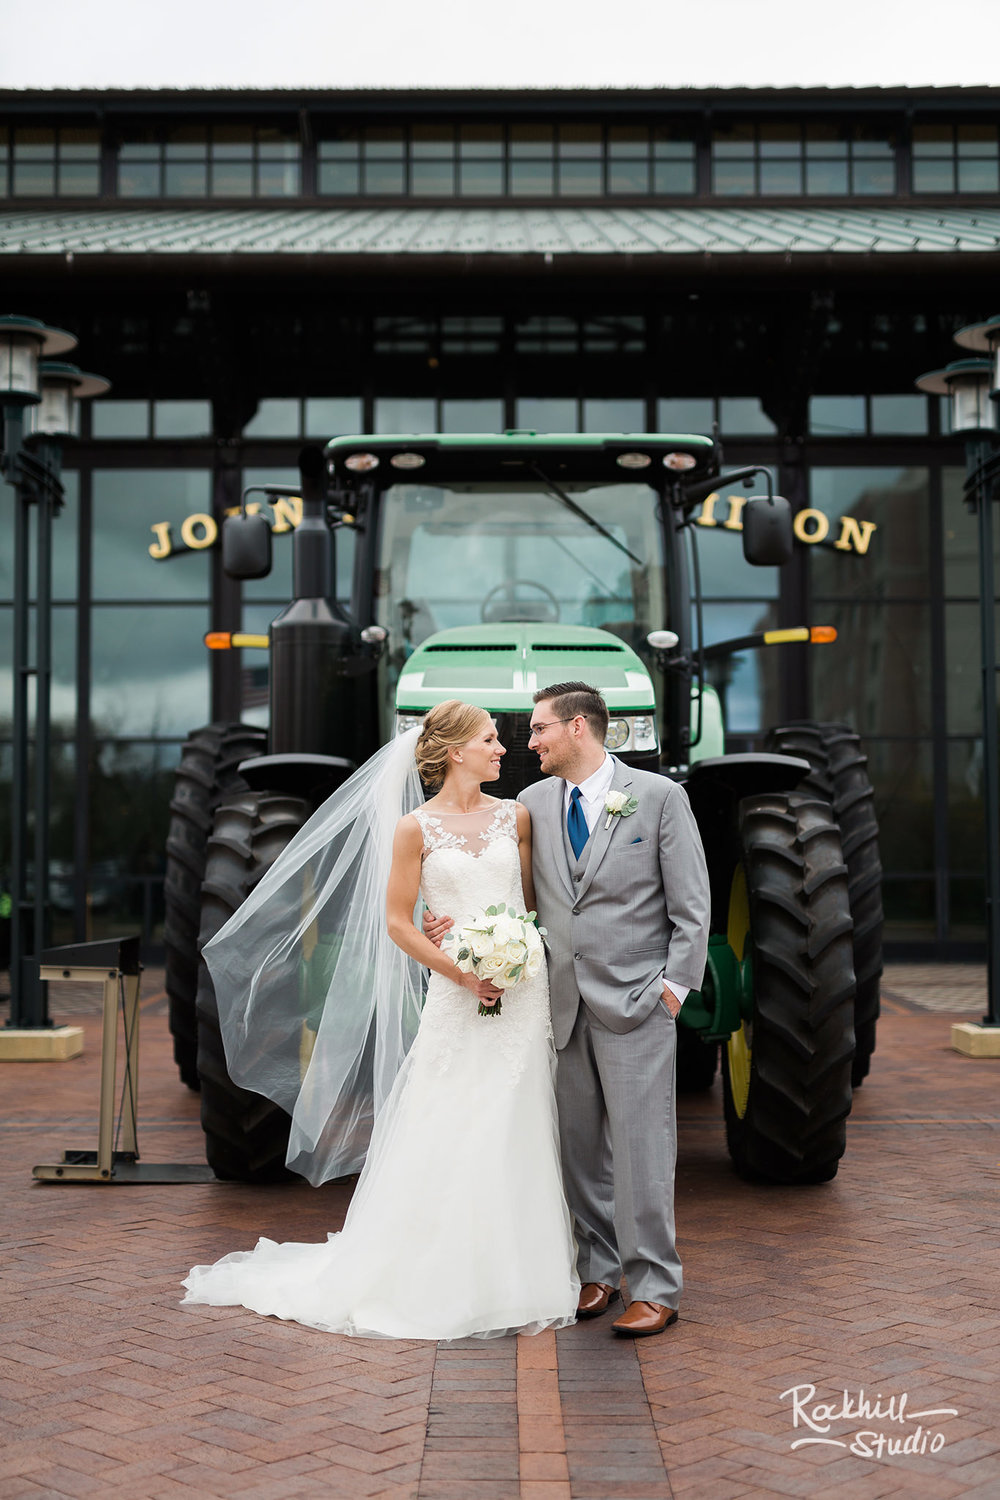 Traverse City Wedding Photographer, bride and groom portraits, john deere, Rockhill Studio, destination wedding photography